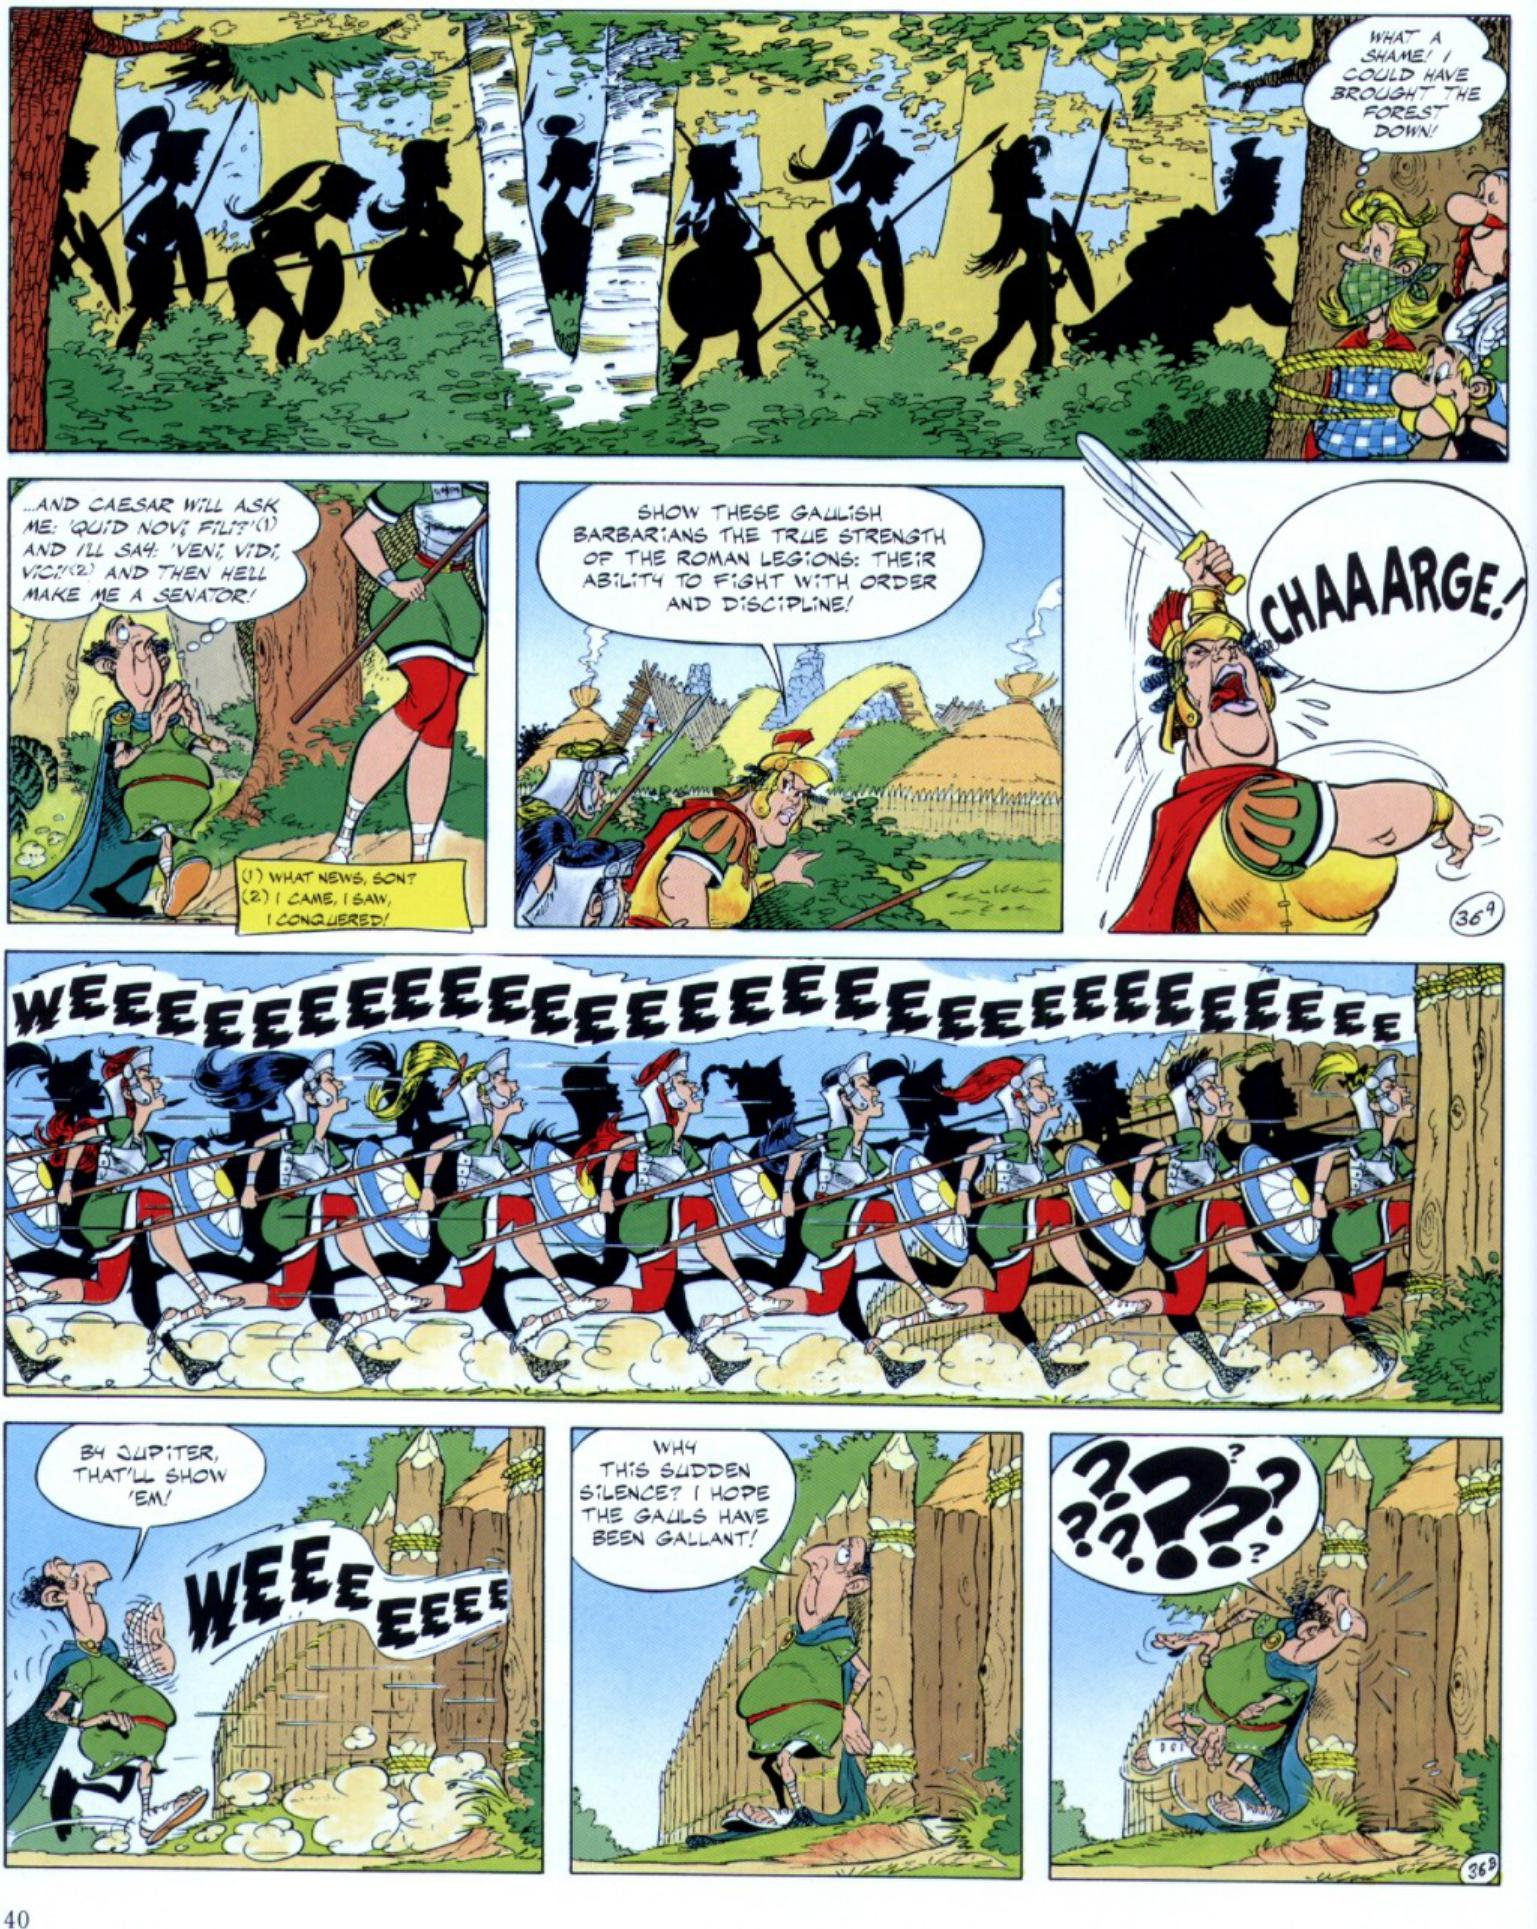 Read online Asterix comic -  Issue #29 - 38